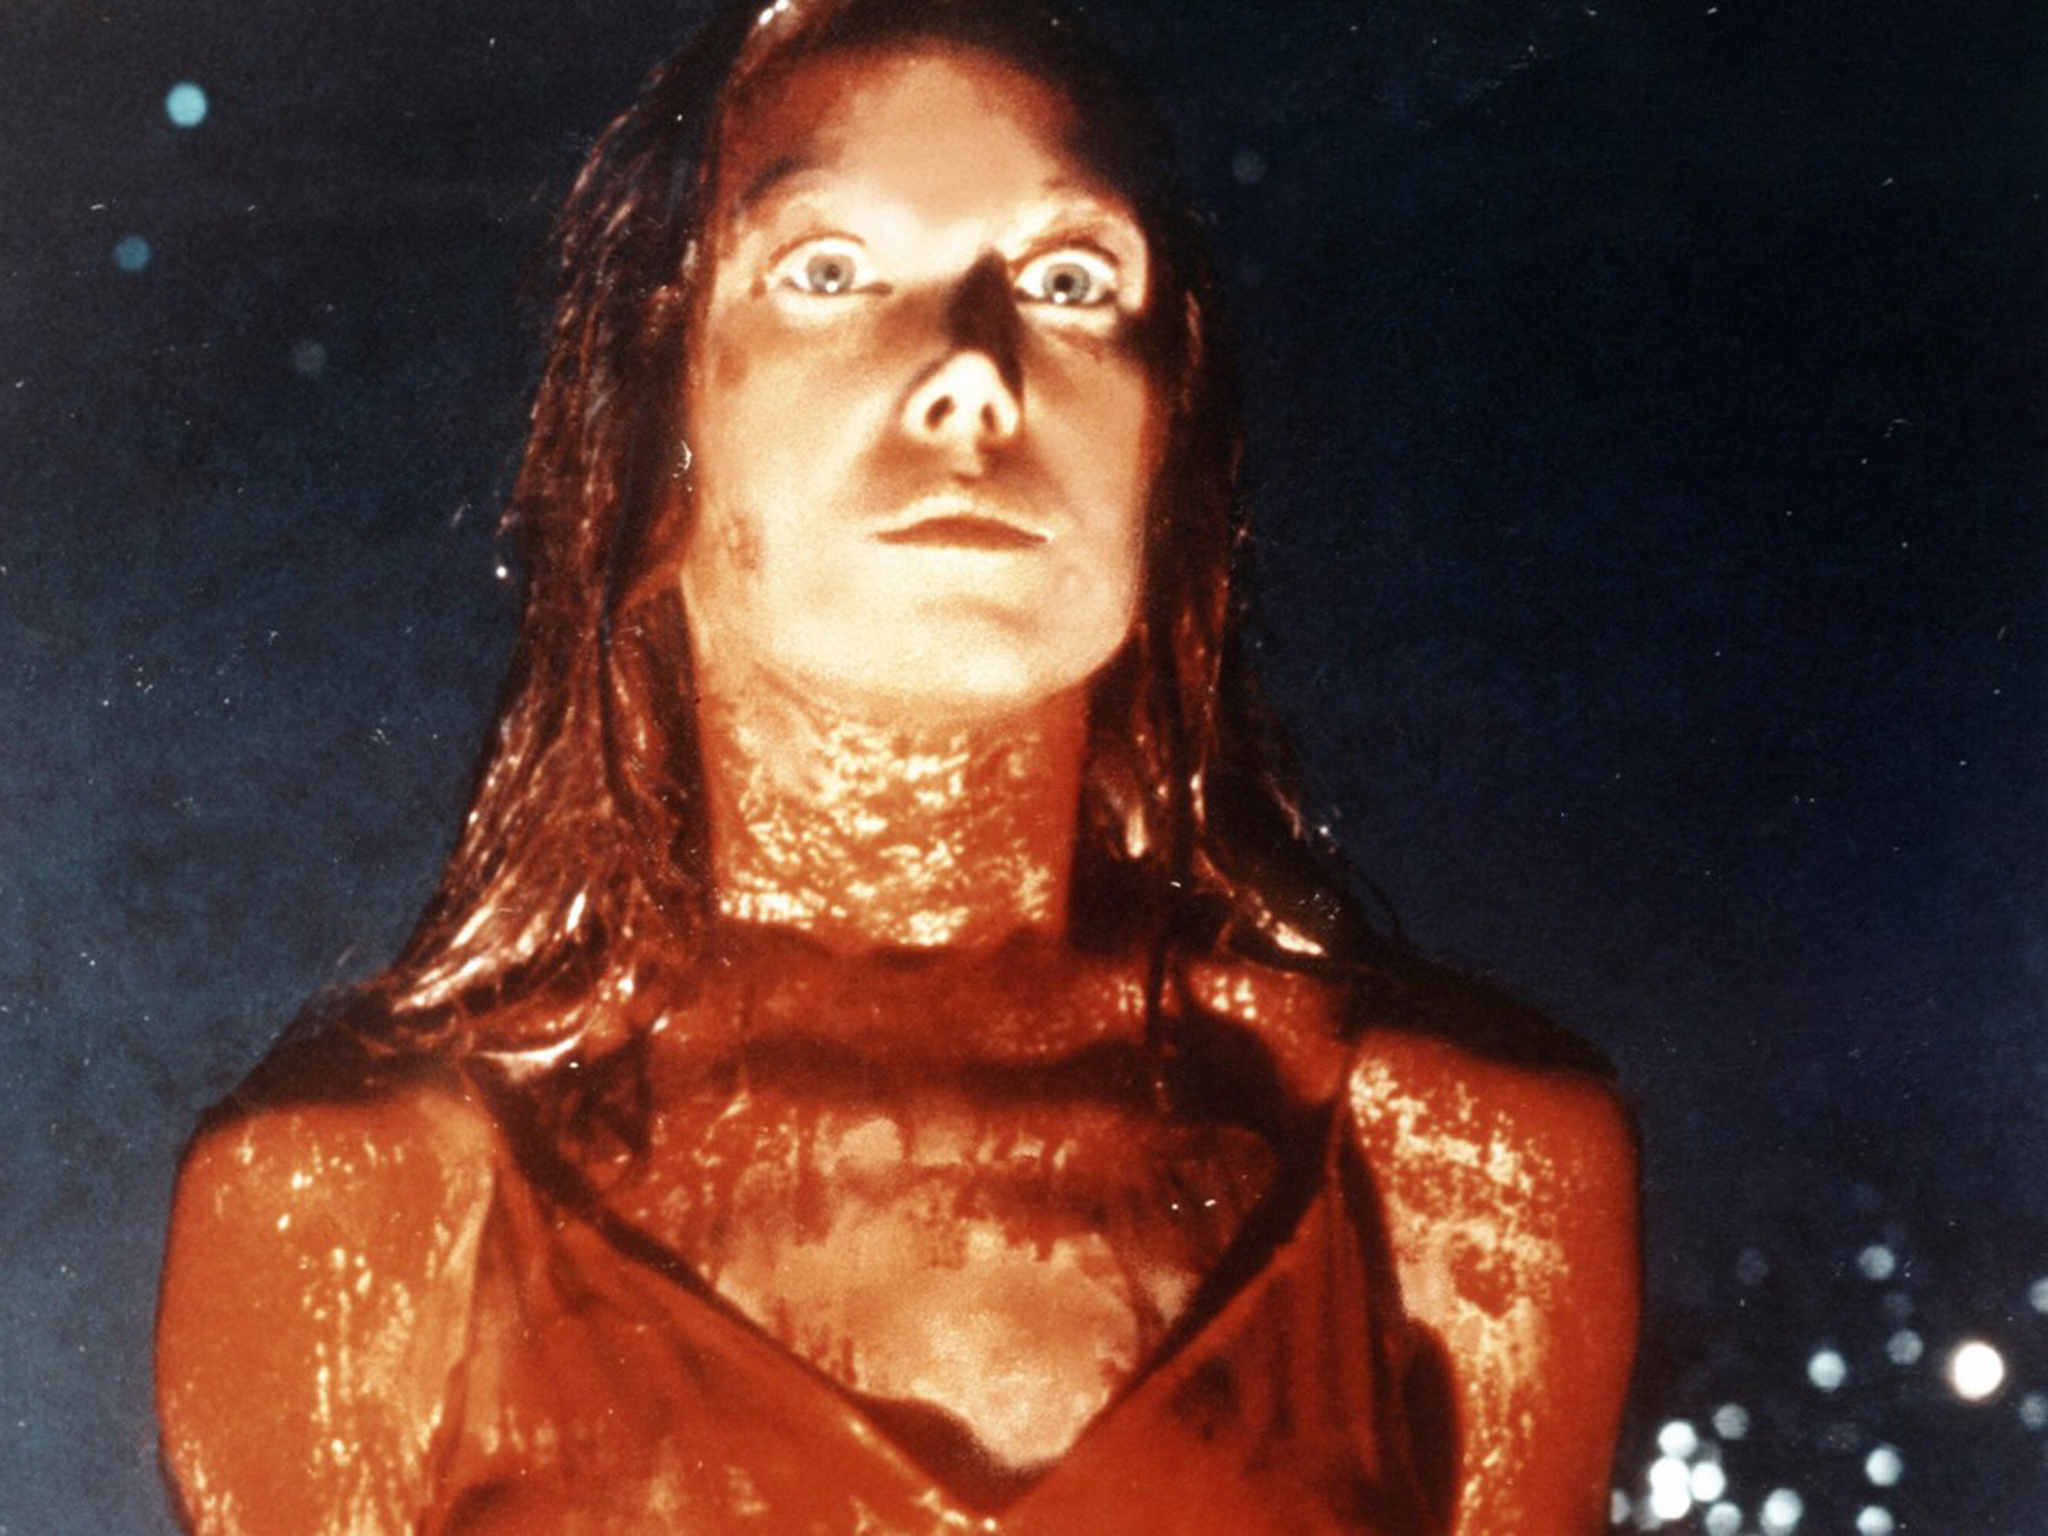 films for planning halloween costume, carrie